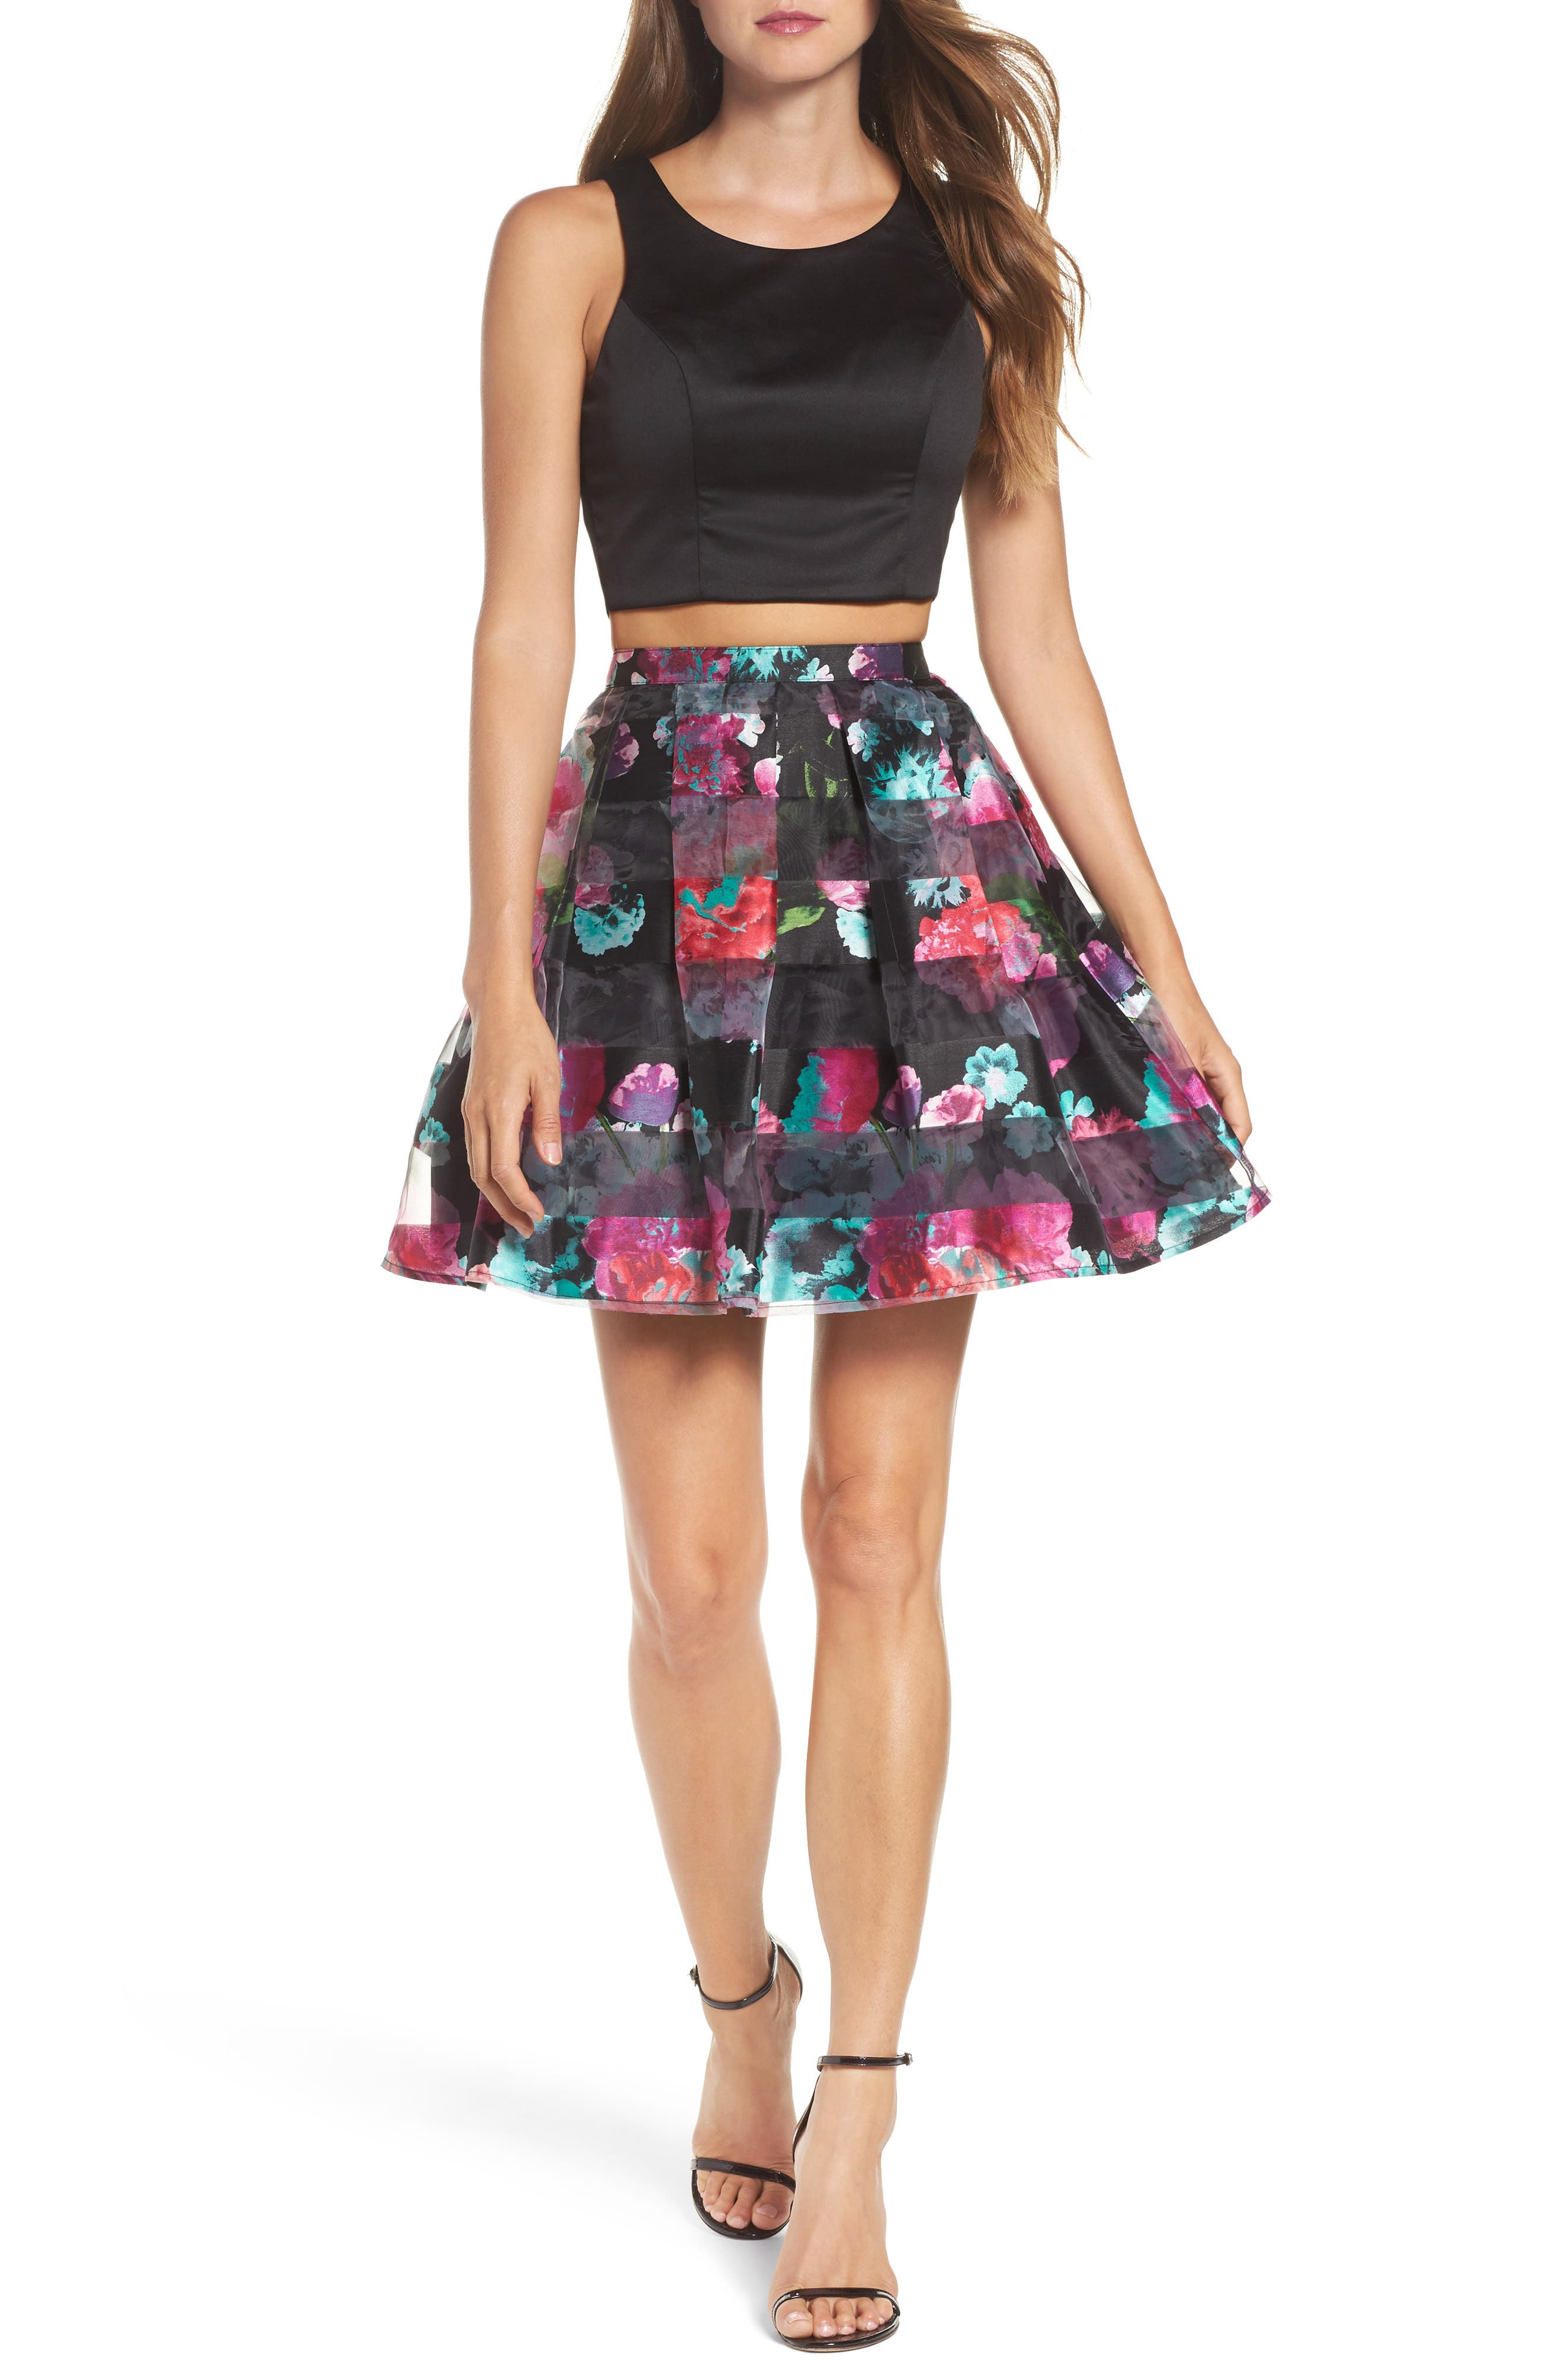 Main Image - Sequin Hearts Printed Shadow Skirt Two-Piece Fit & Flare Dress